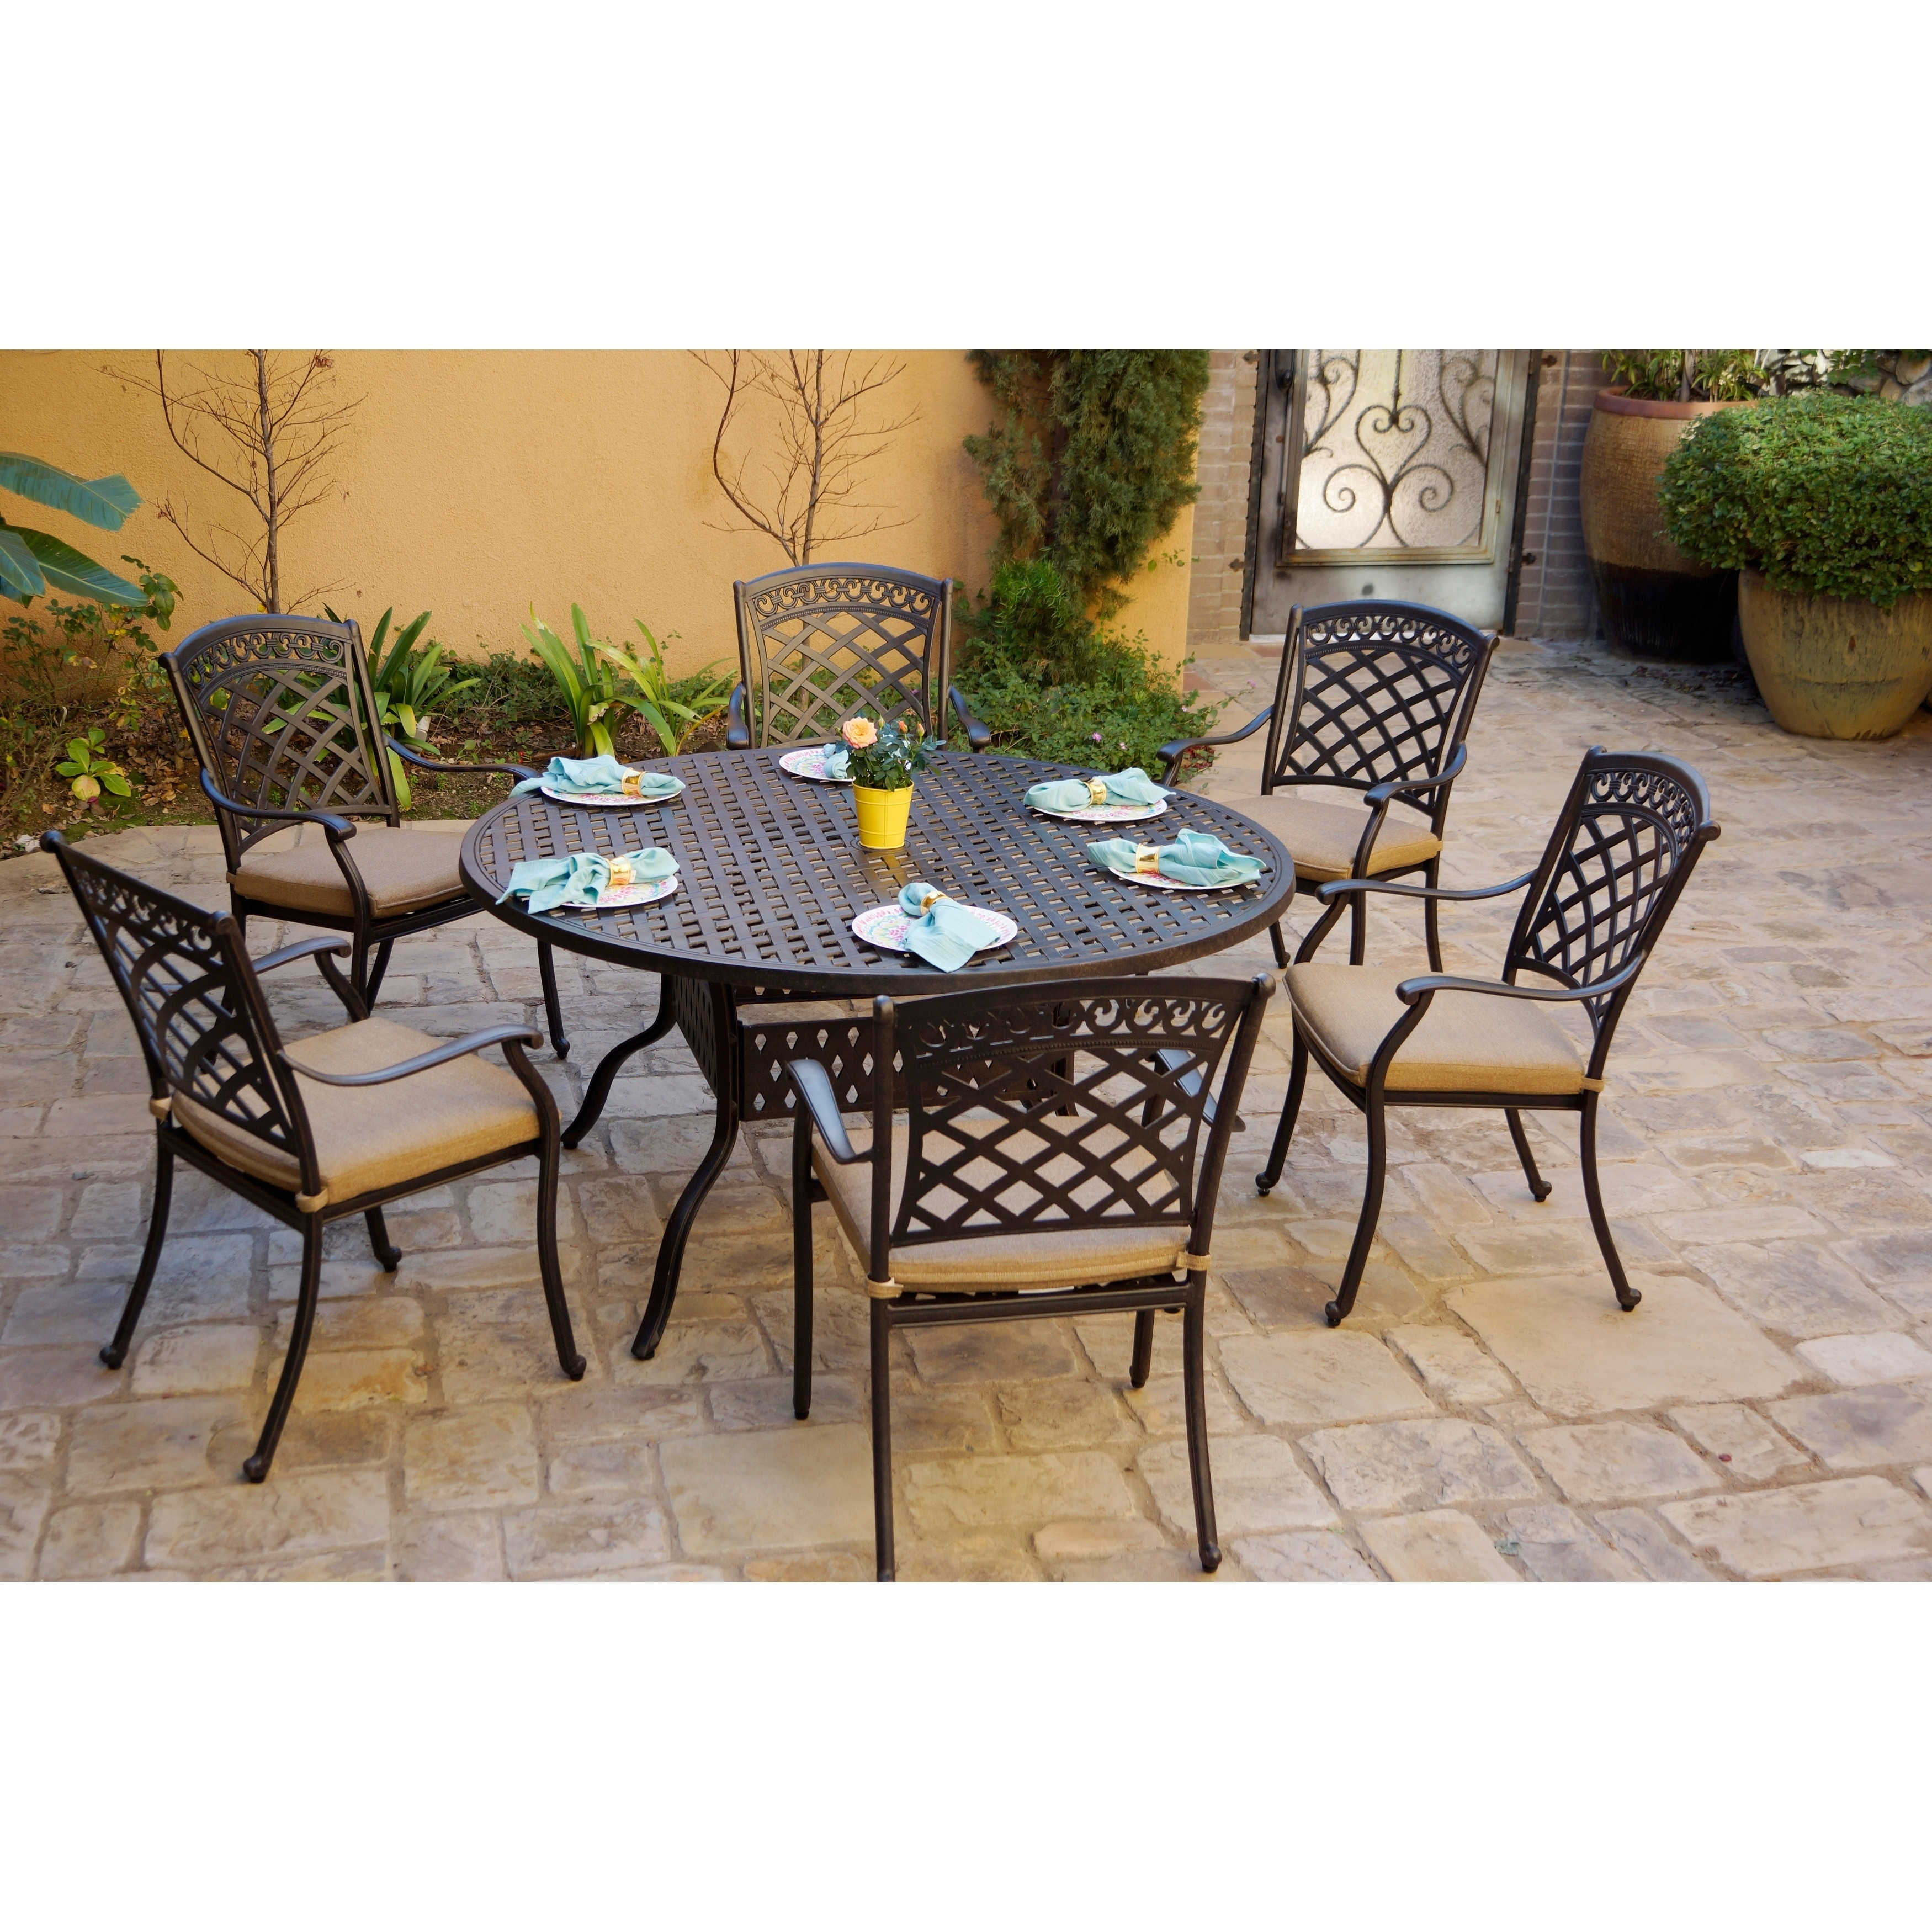 Round Table Patio Dining Sets.7 Piece Patio Dining Set 60 Inch Round Dining Table